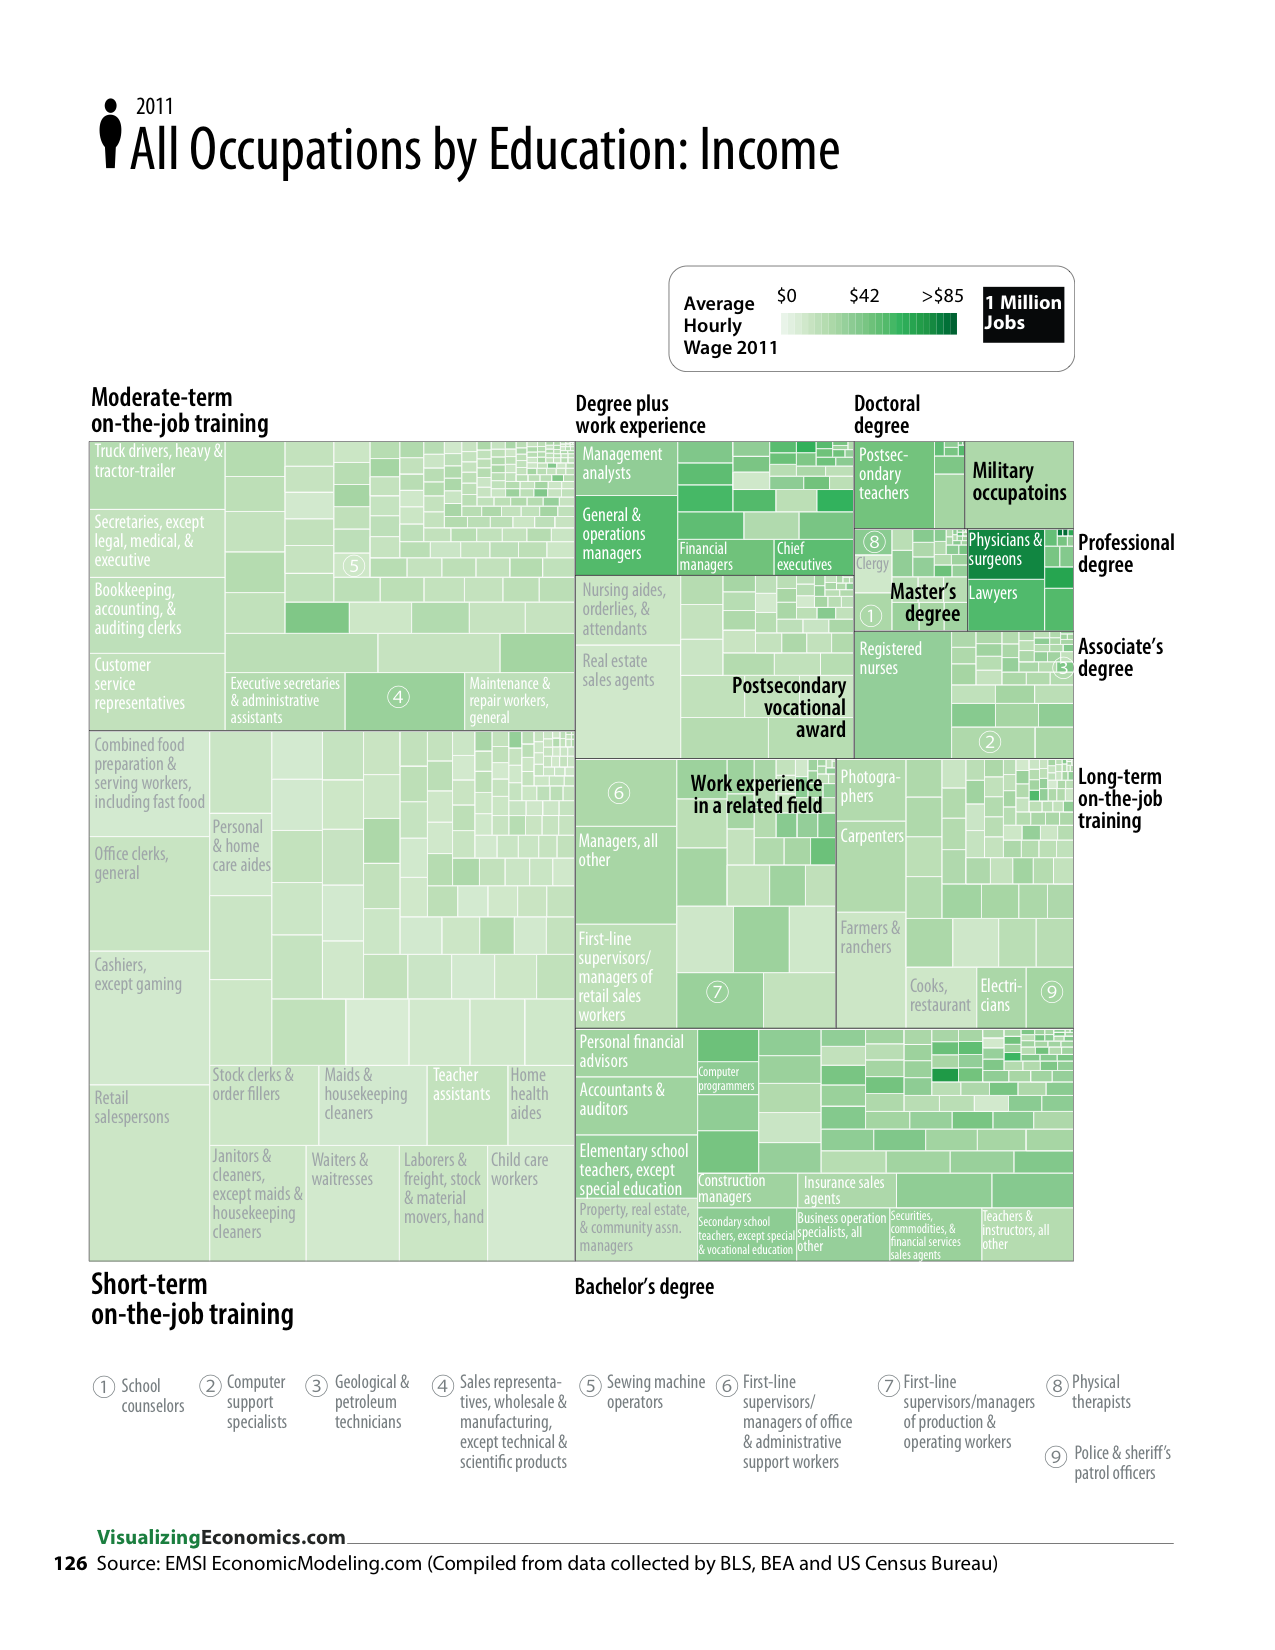 Income All Occupations by Education